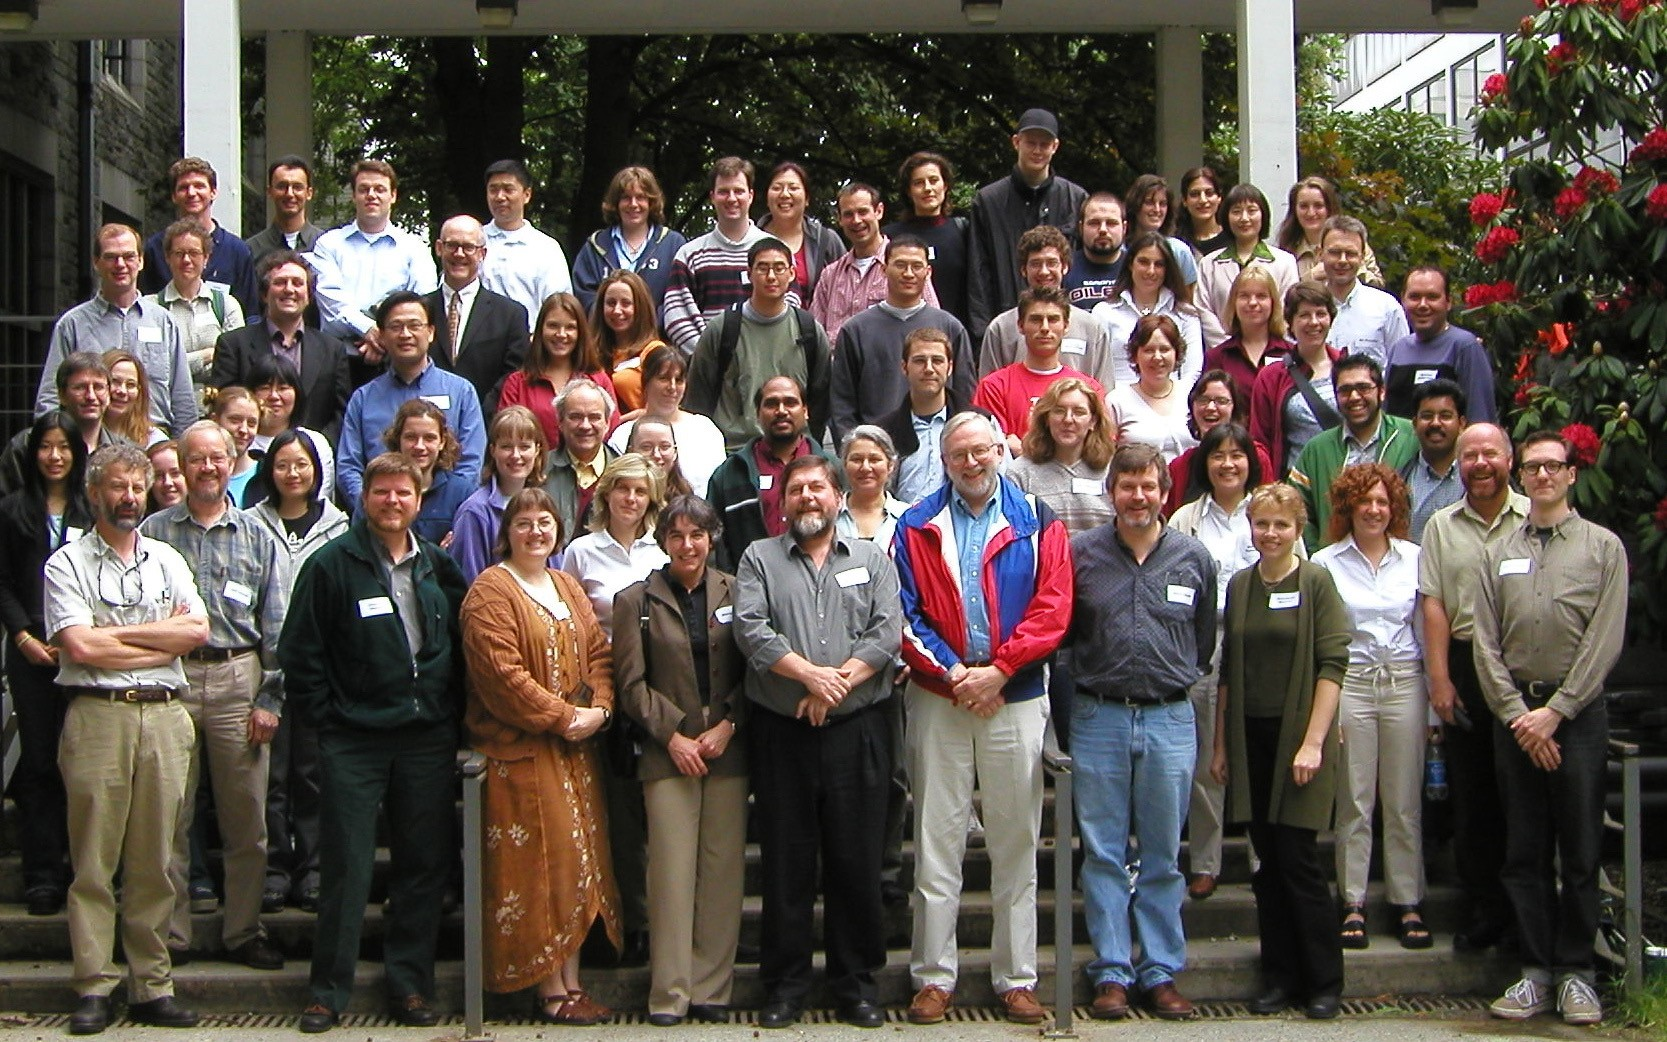 A photo of the CBRs members in 2002